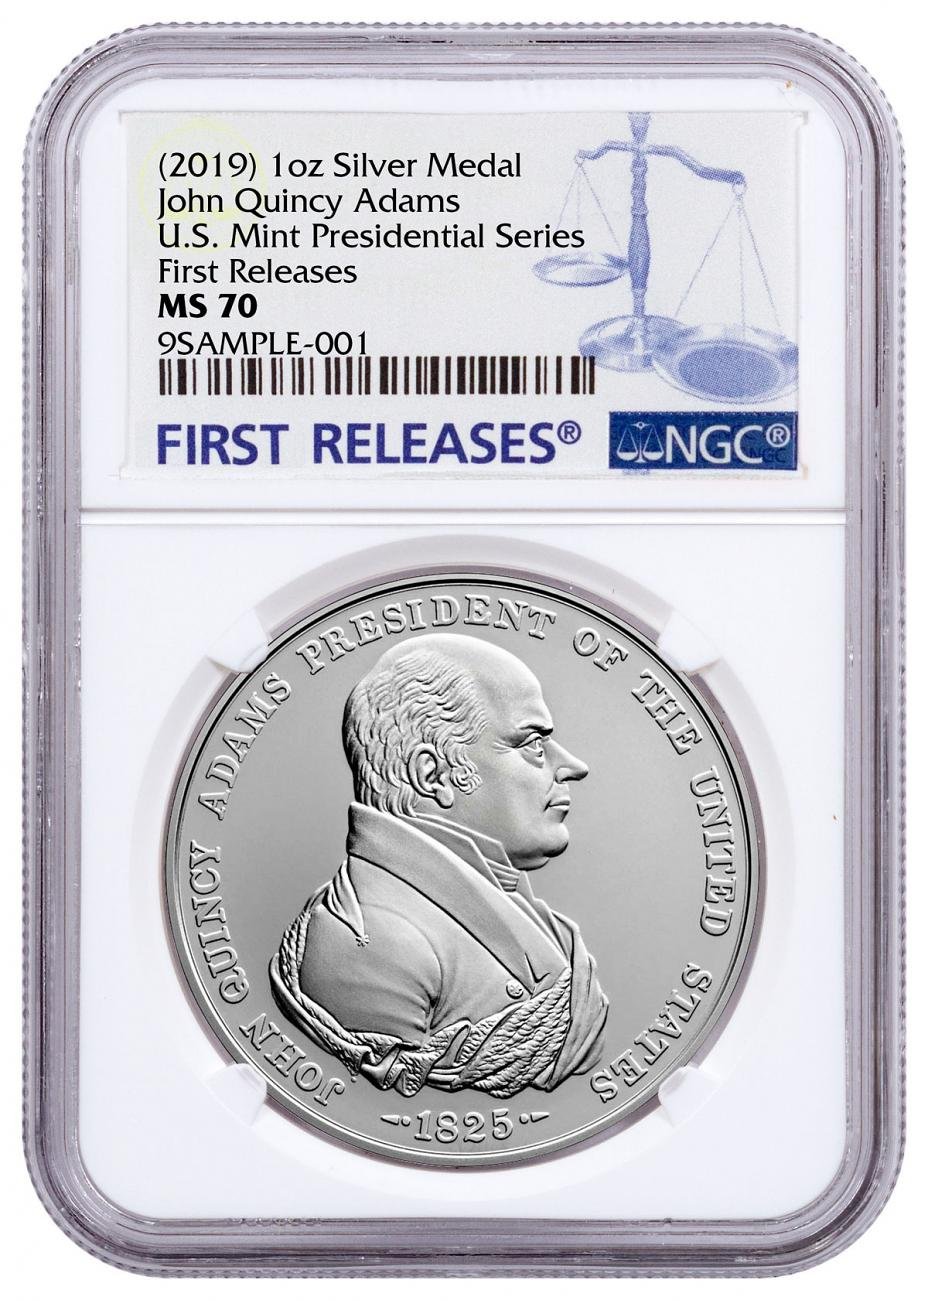 (2019) United States John Quincy Adams Presidential 1 oz Silver Medal NGC MS70 FR